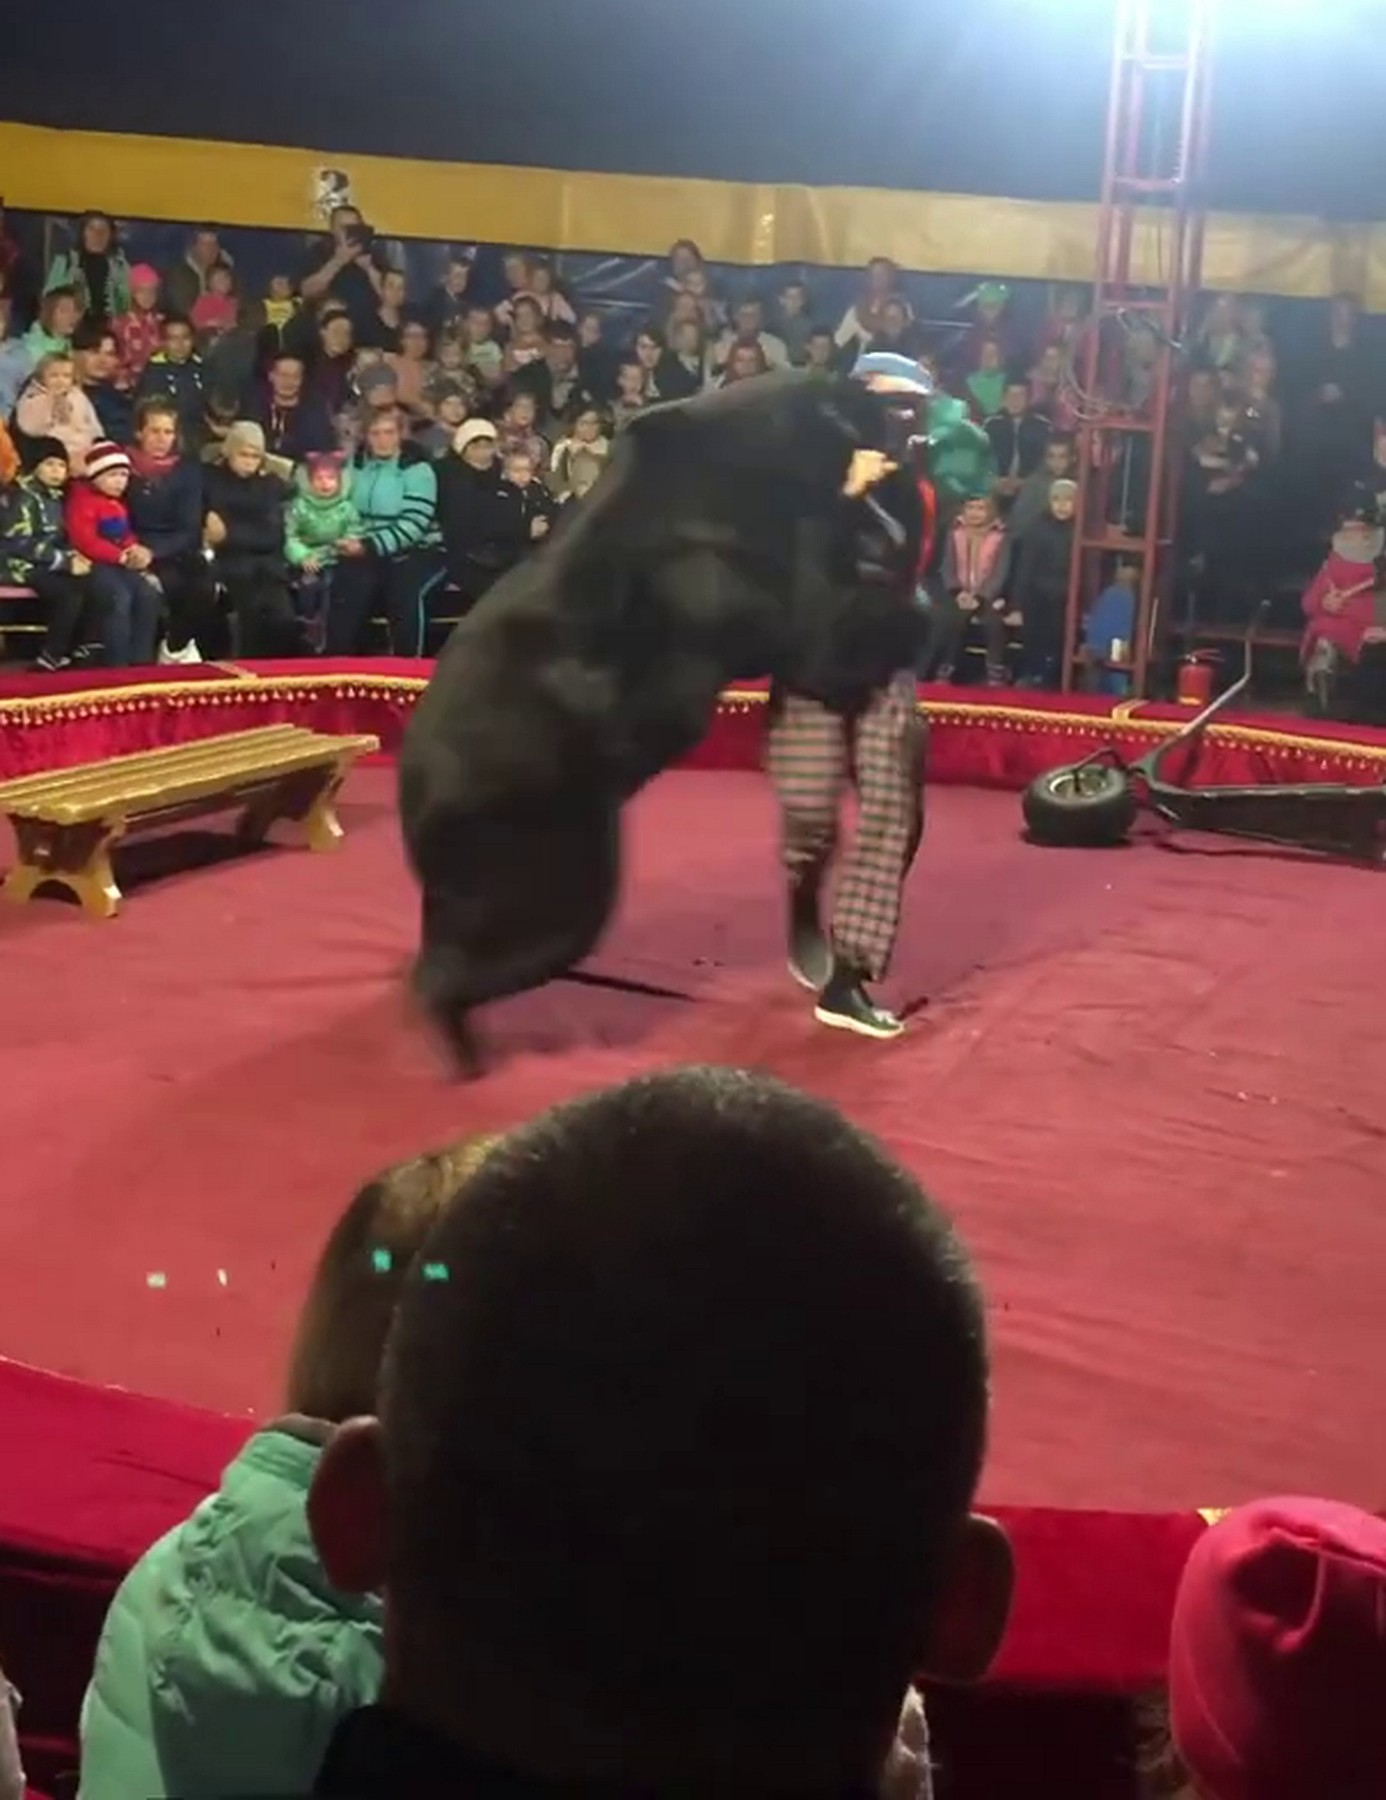 Bear attacked the trainer during the performance in the tent circus in Olonets town of Karelia republic., Image: 478855293, License: Rights-managed, Restrictions: , Model Release: no, Credit line: Anna Liesowska / east2west news / East2West News / Profimedia